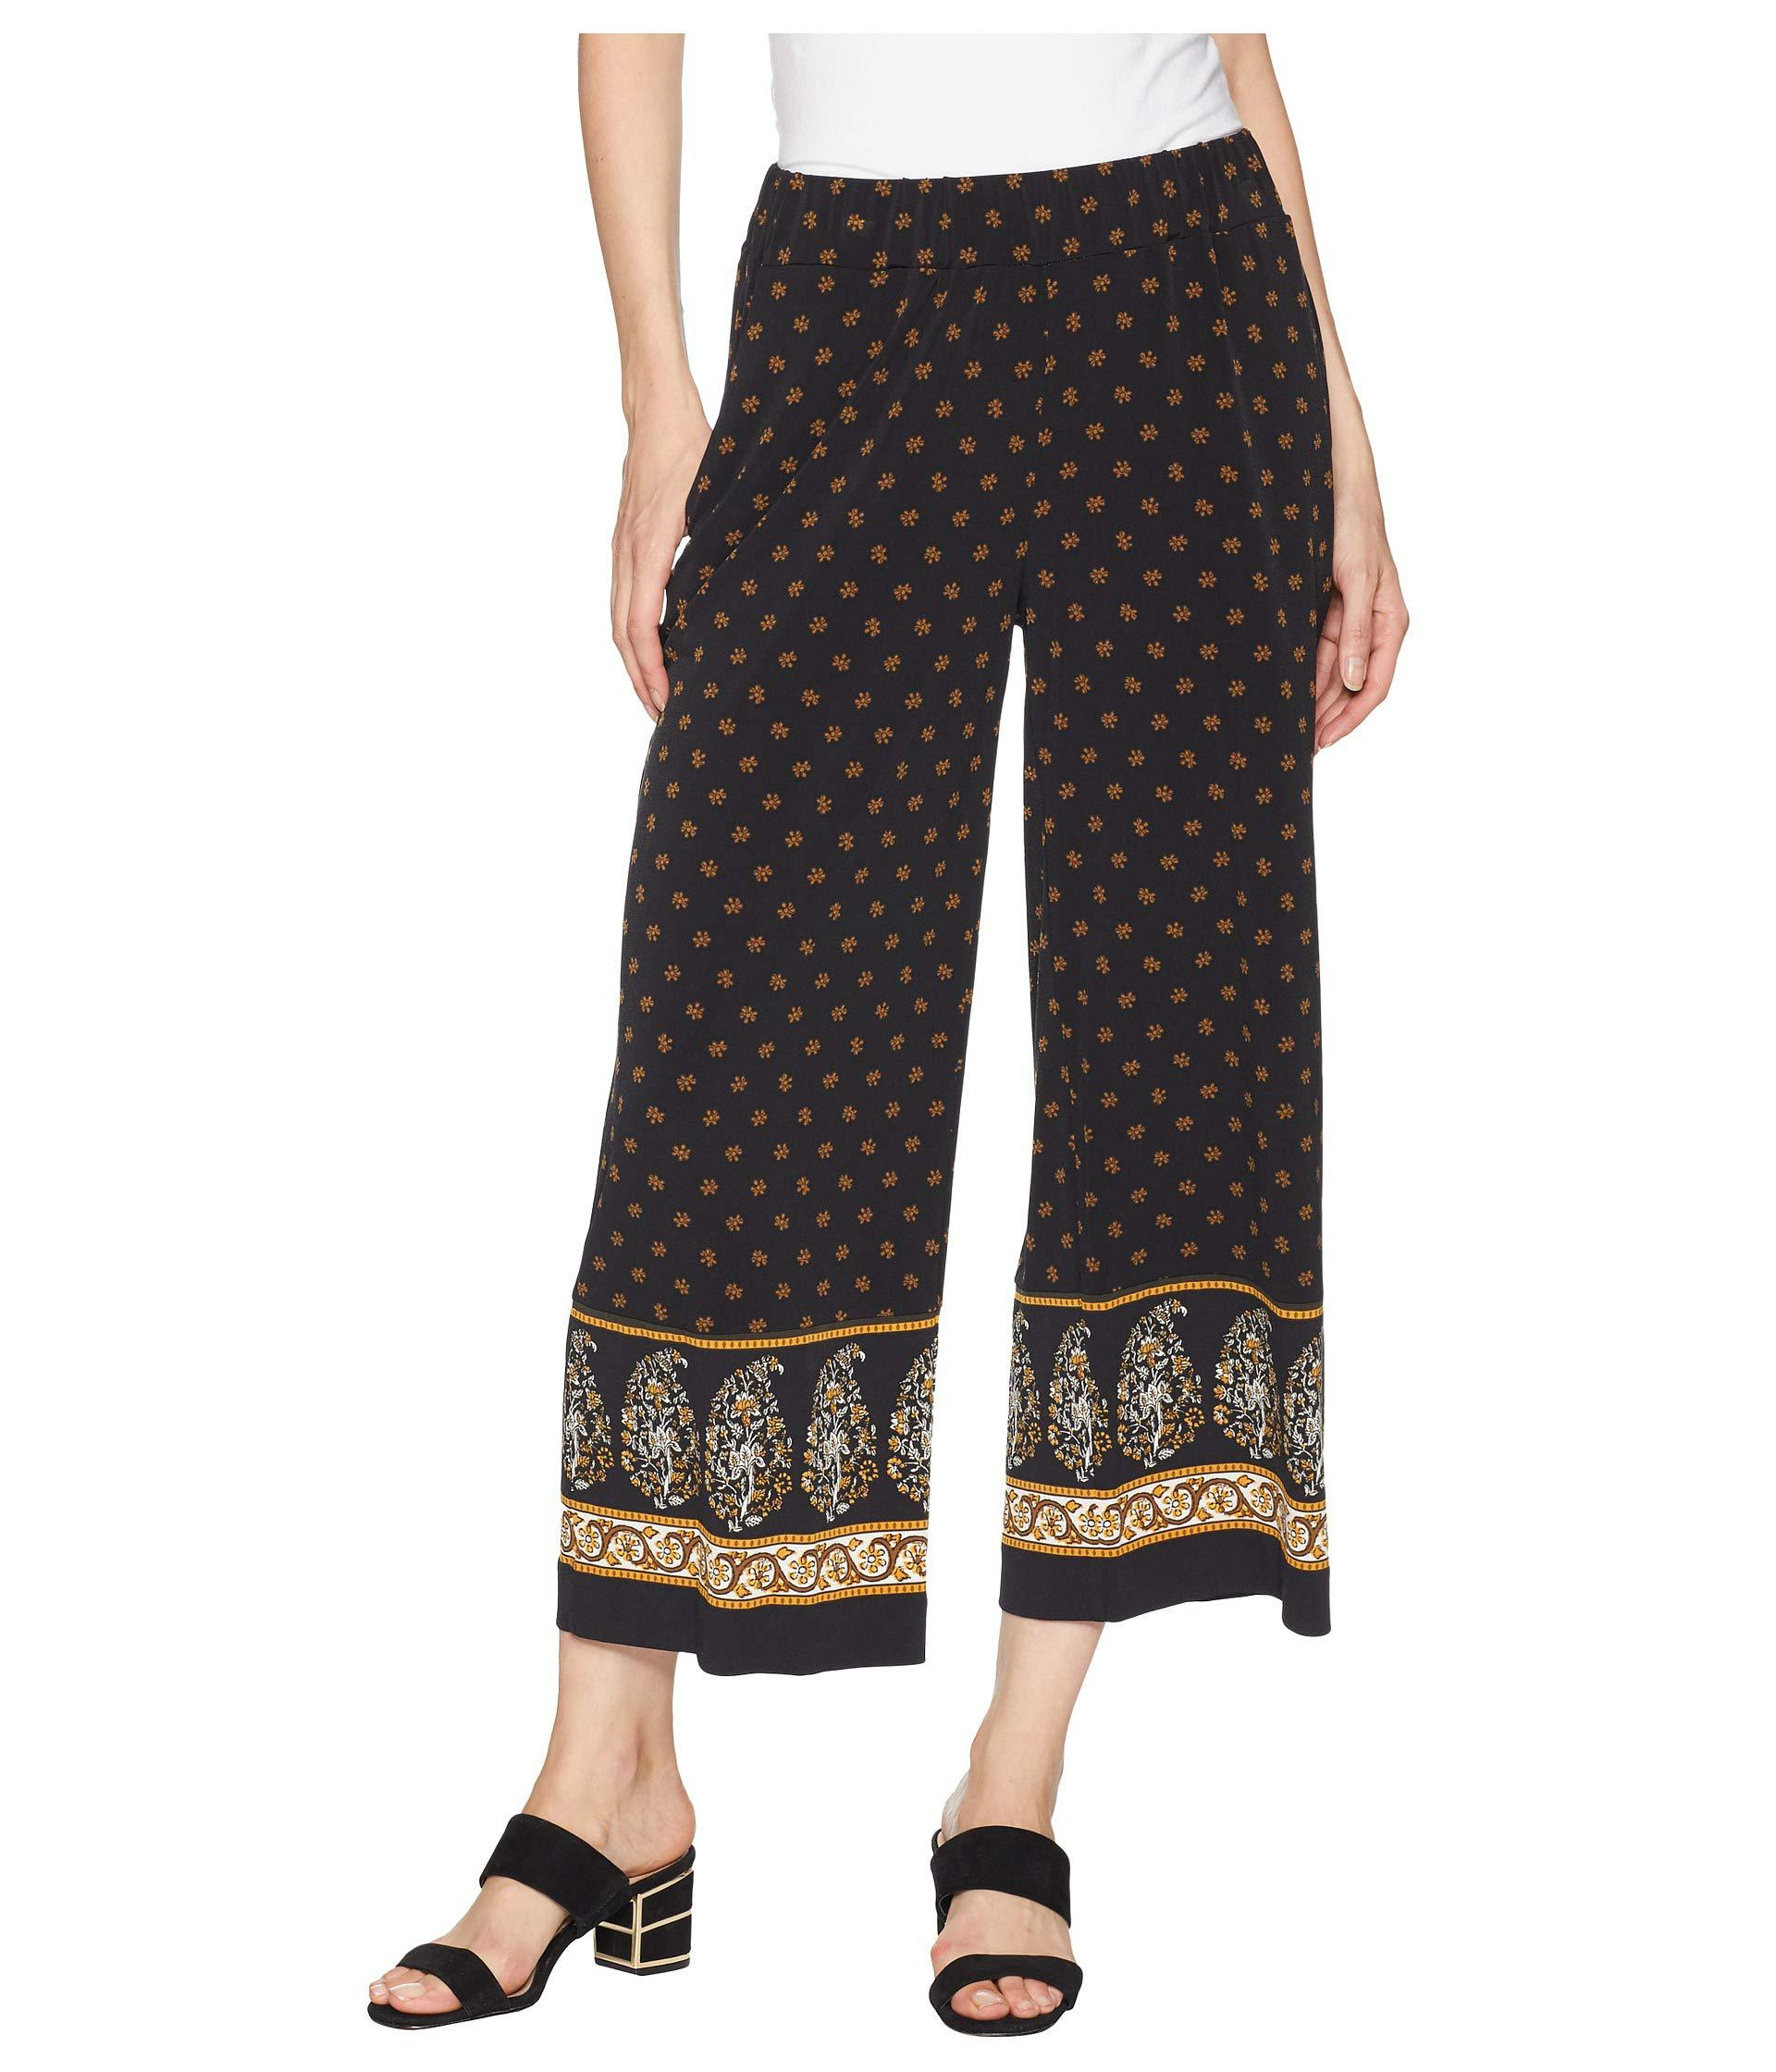 3824950d69 Lyst - MICHAEL Michael Kors Paisley Garden Border Pants in Black ...